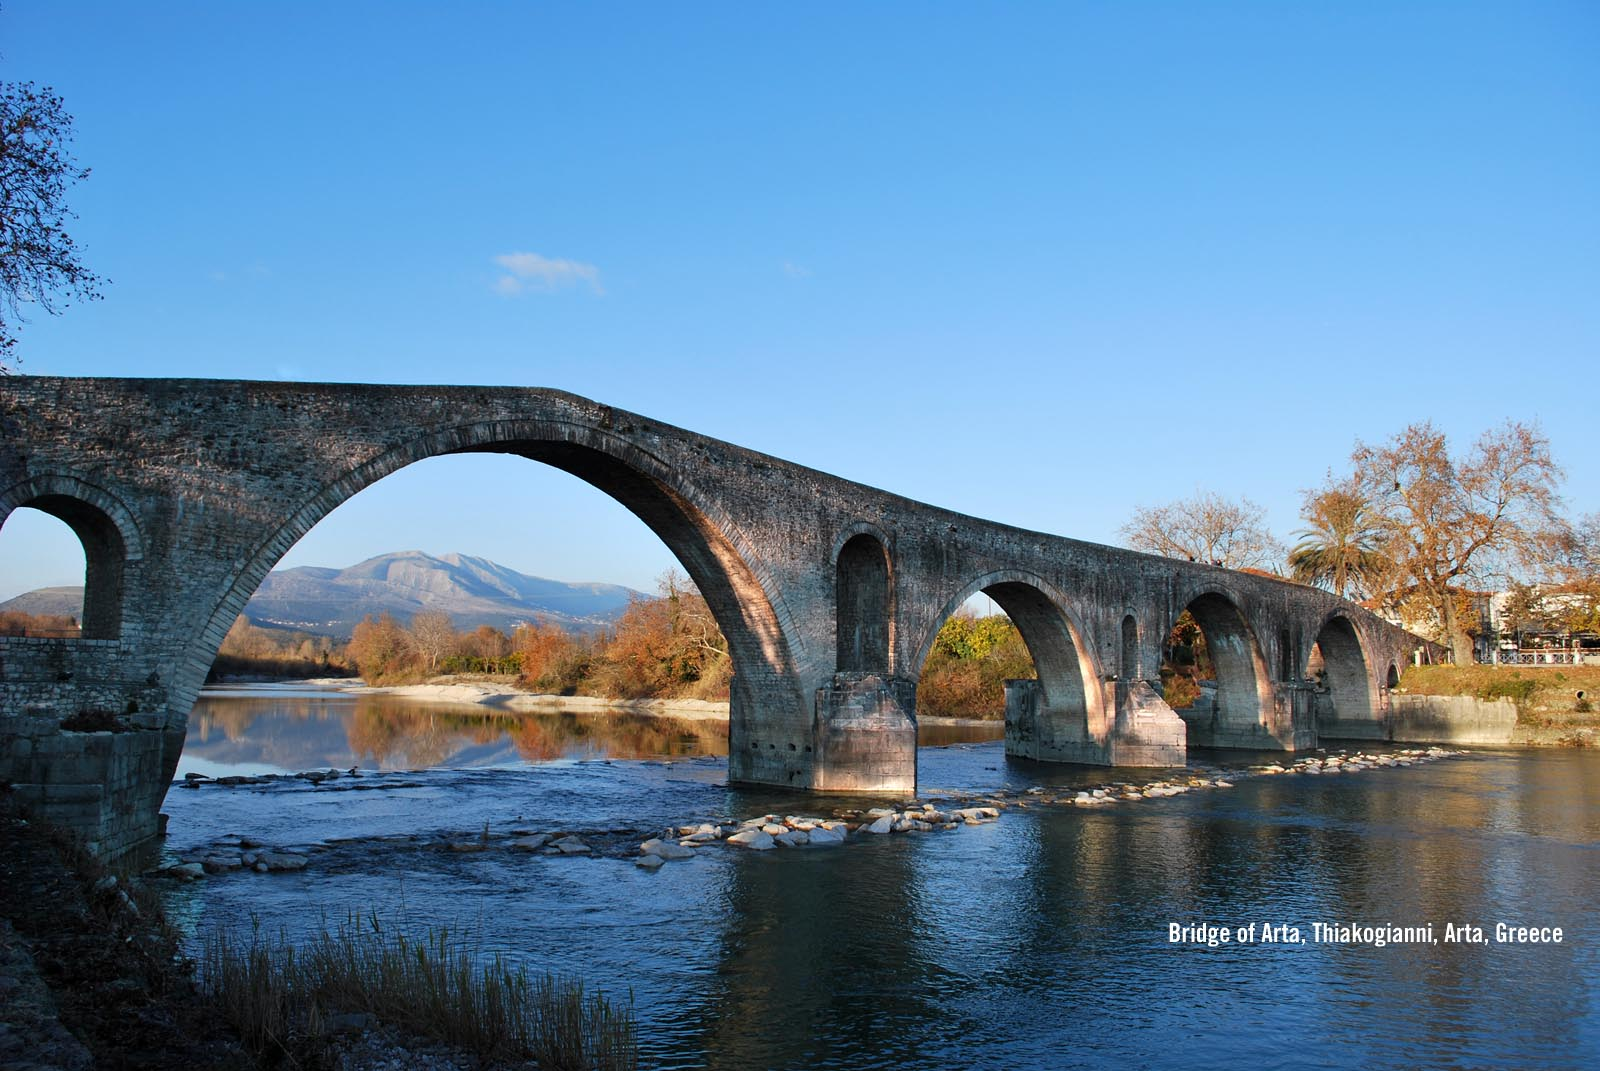 Enlarged - - Arta Bridge in Thiakogianni Greece